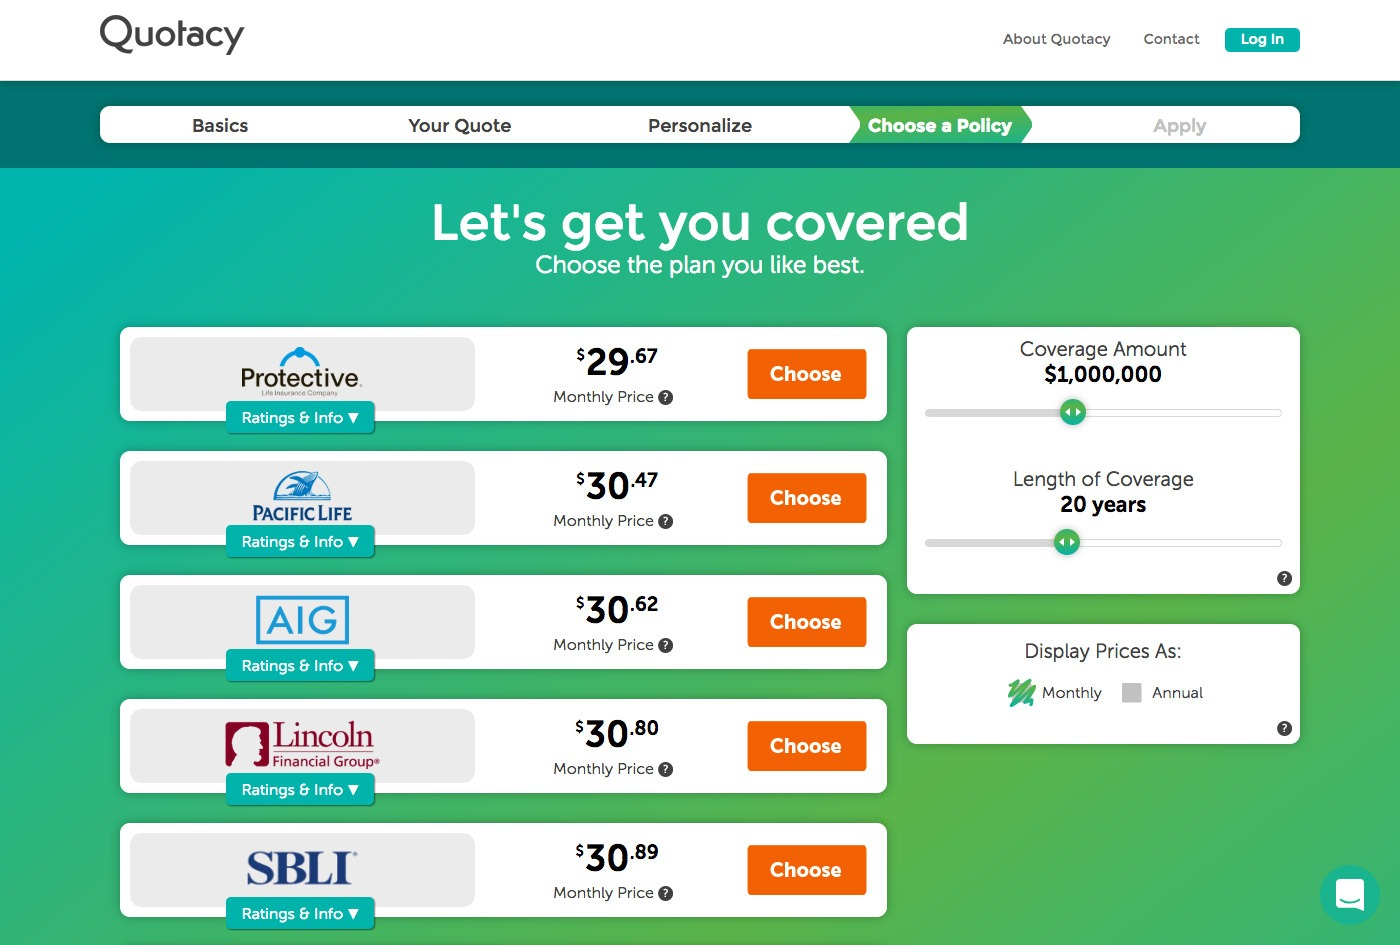 Quotacy quoting tool showing carrier options for $1,000,000 term coverage